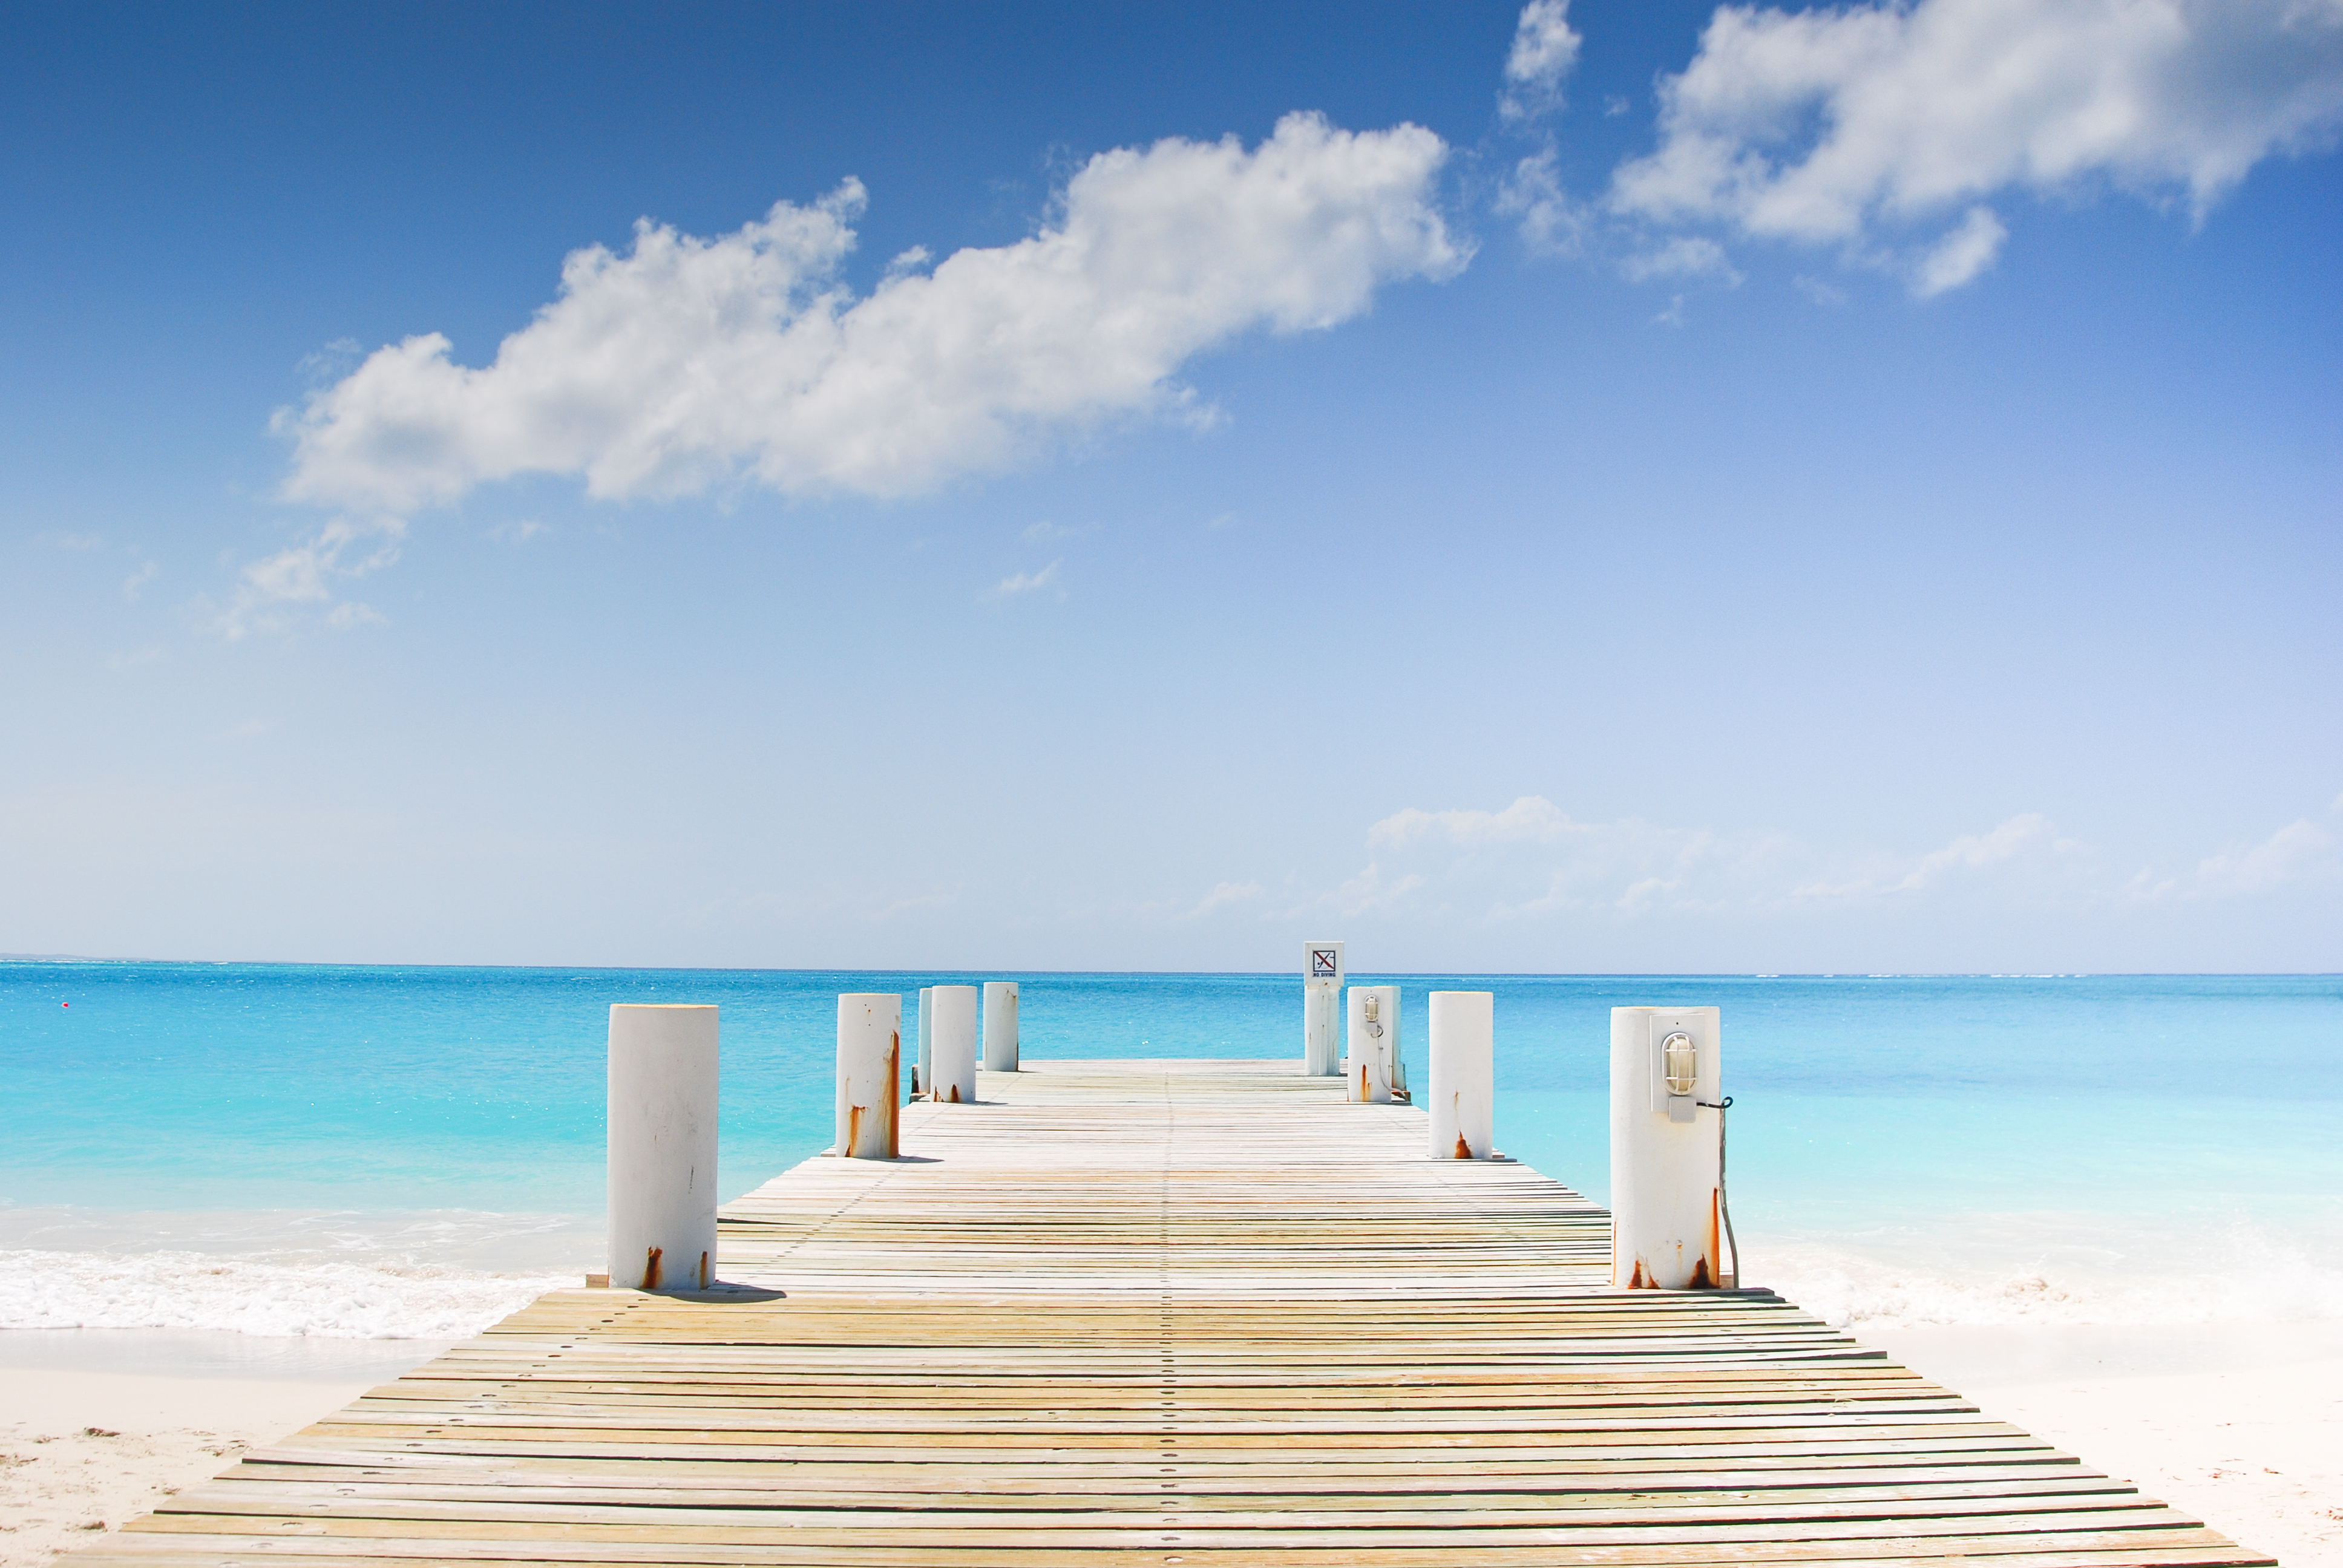 A beautiful day looking out onto the jetty in Providenciales, Turks and Caicos